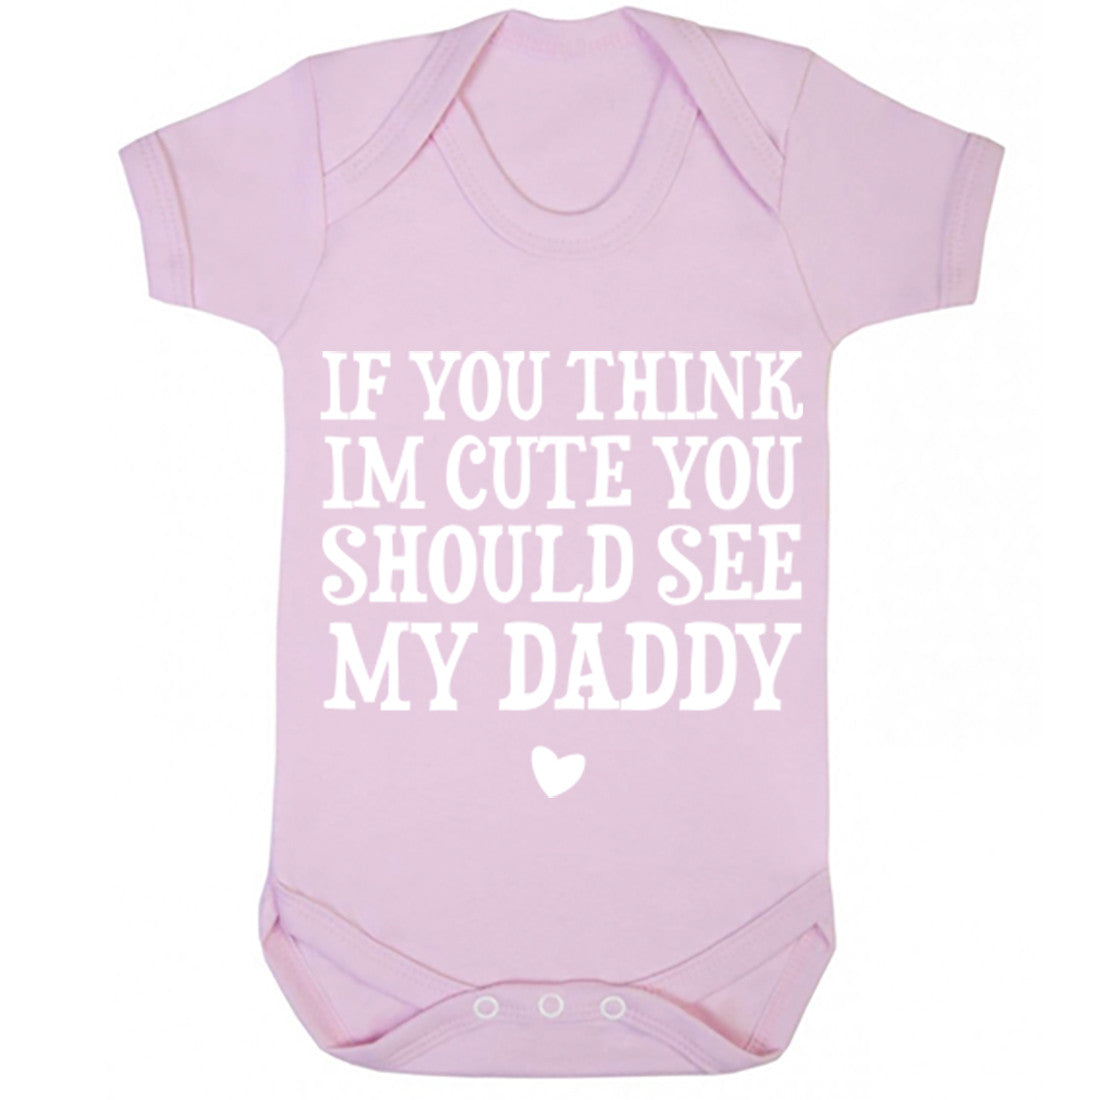 If You Think I'm Cute You Should See My Daddy Baby Vest K0018 - Illustrated Identity Ltd.